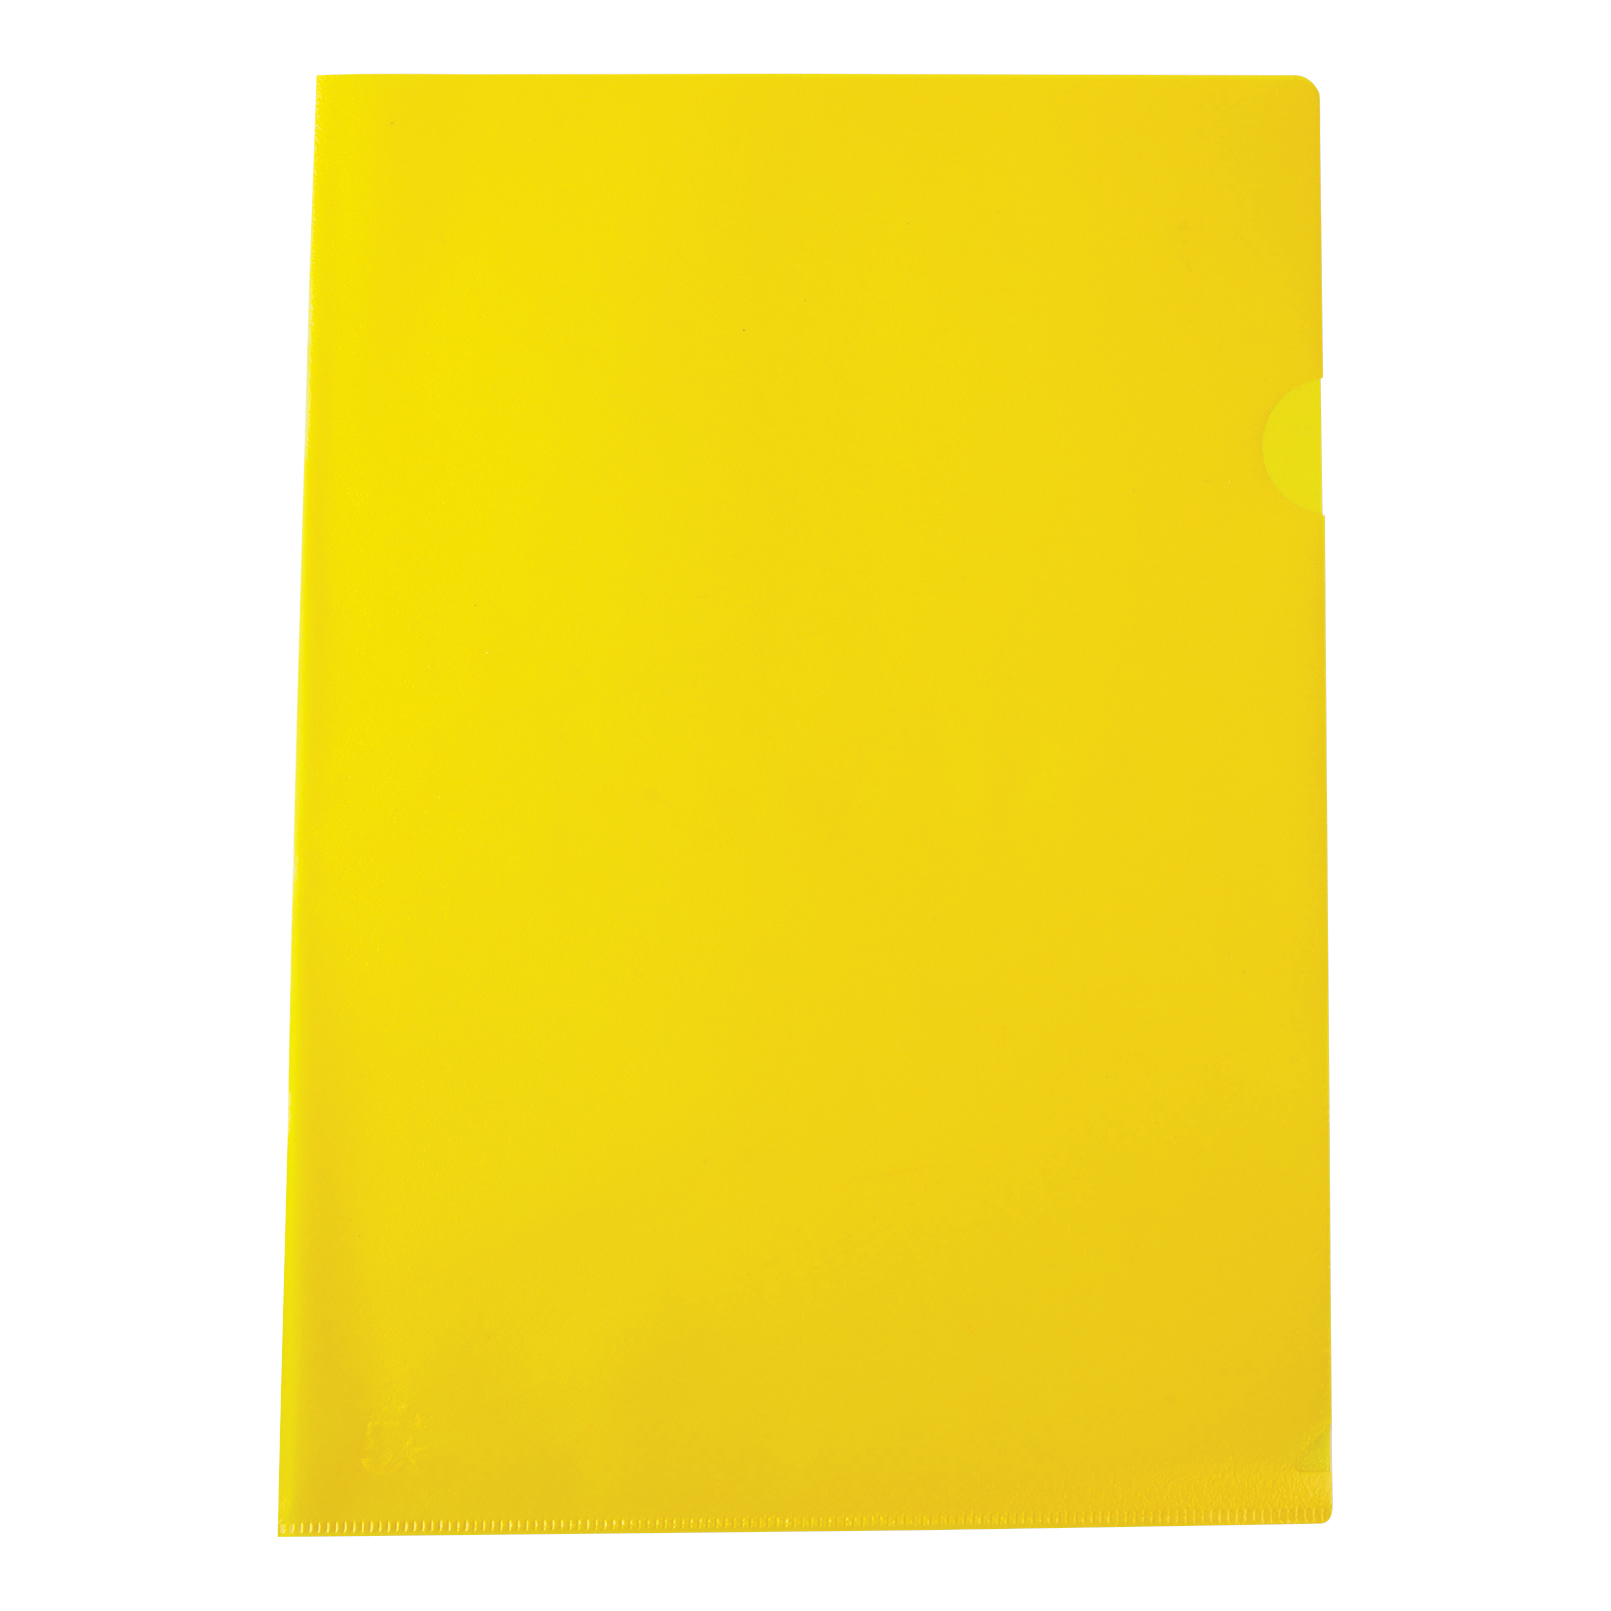 Image for 5 Star Office Folder Cut Flush Polypropylene Copy-safe Translucent 120 Micron A4 Yellow [Pack 25]